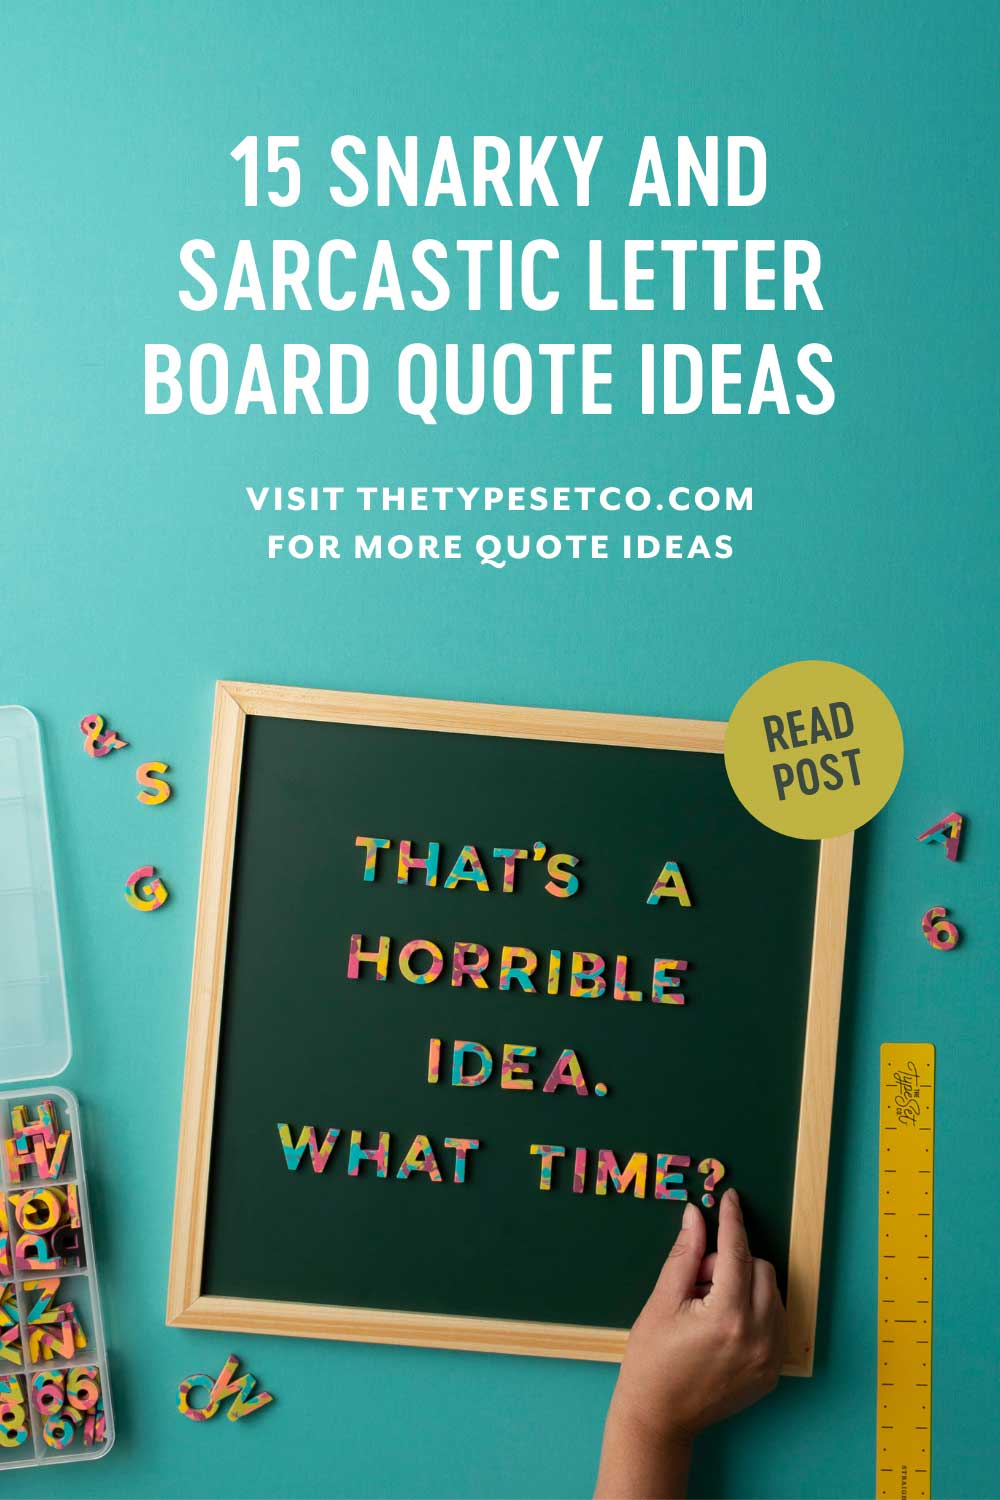 15 Snarky and Sarcastic Letterboard Quote Ideas